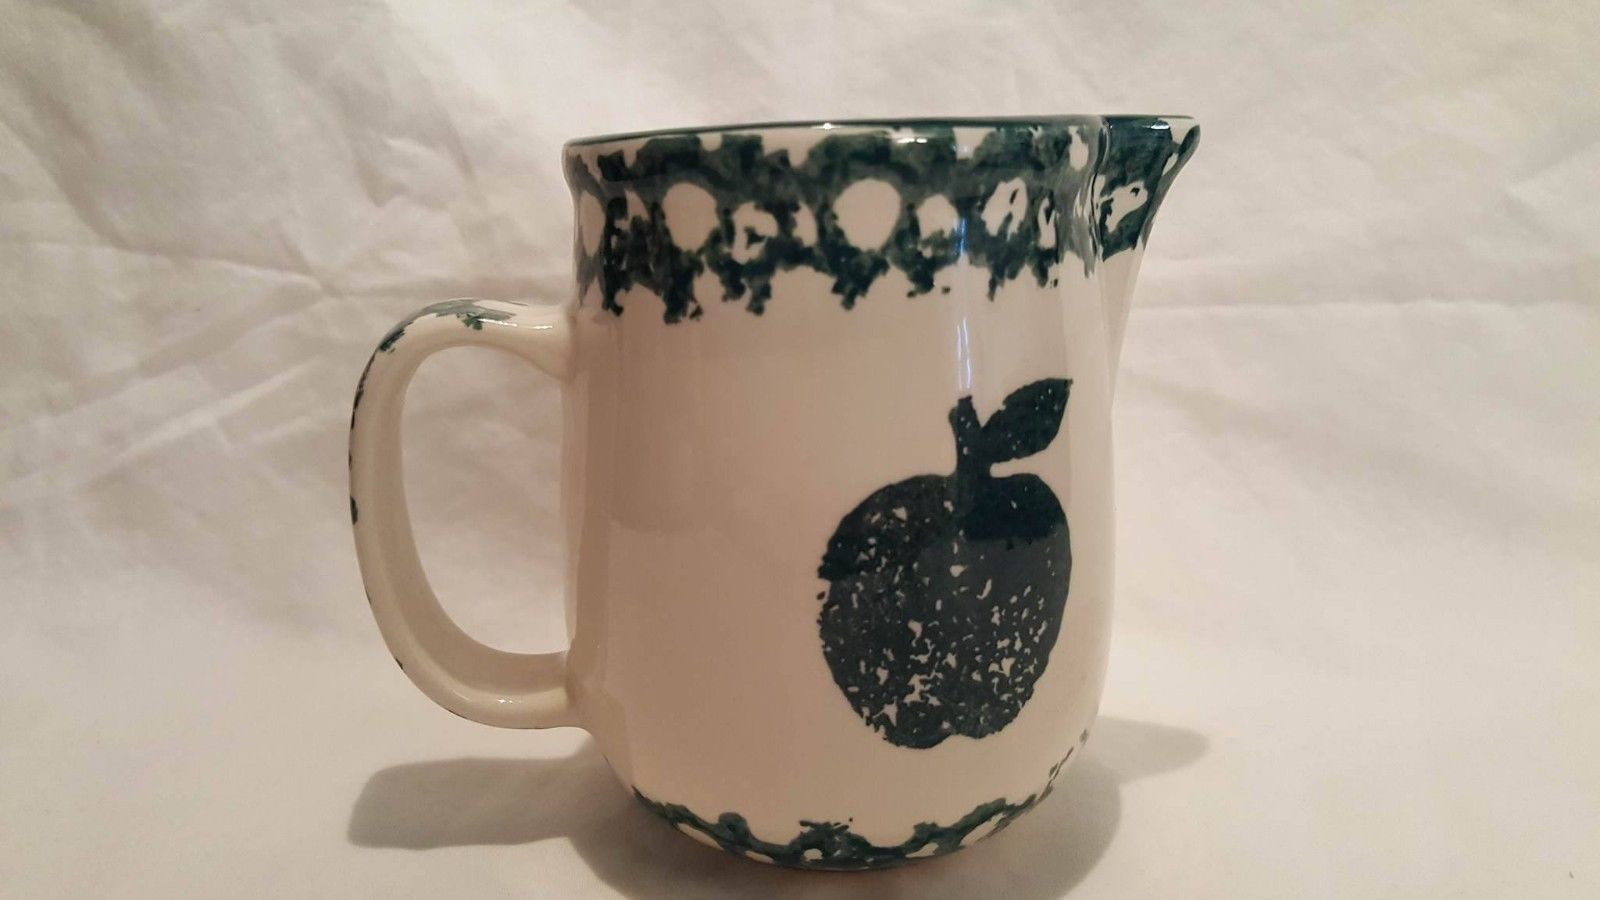 Tienshan Folk Craft APPLE Green Sponge Creamer Cup 4 Inches excellent